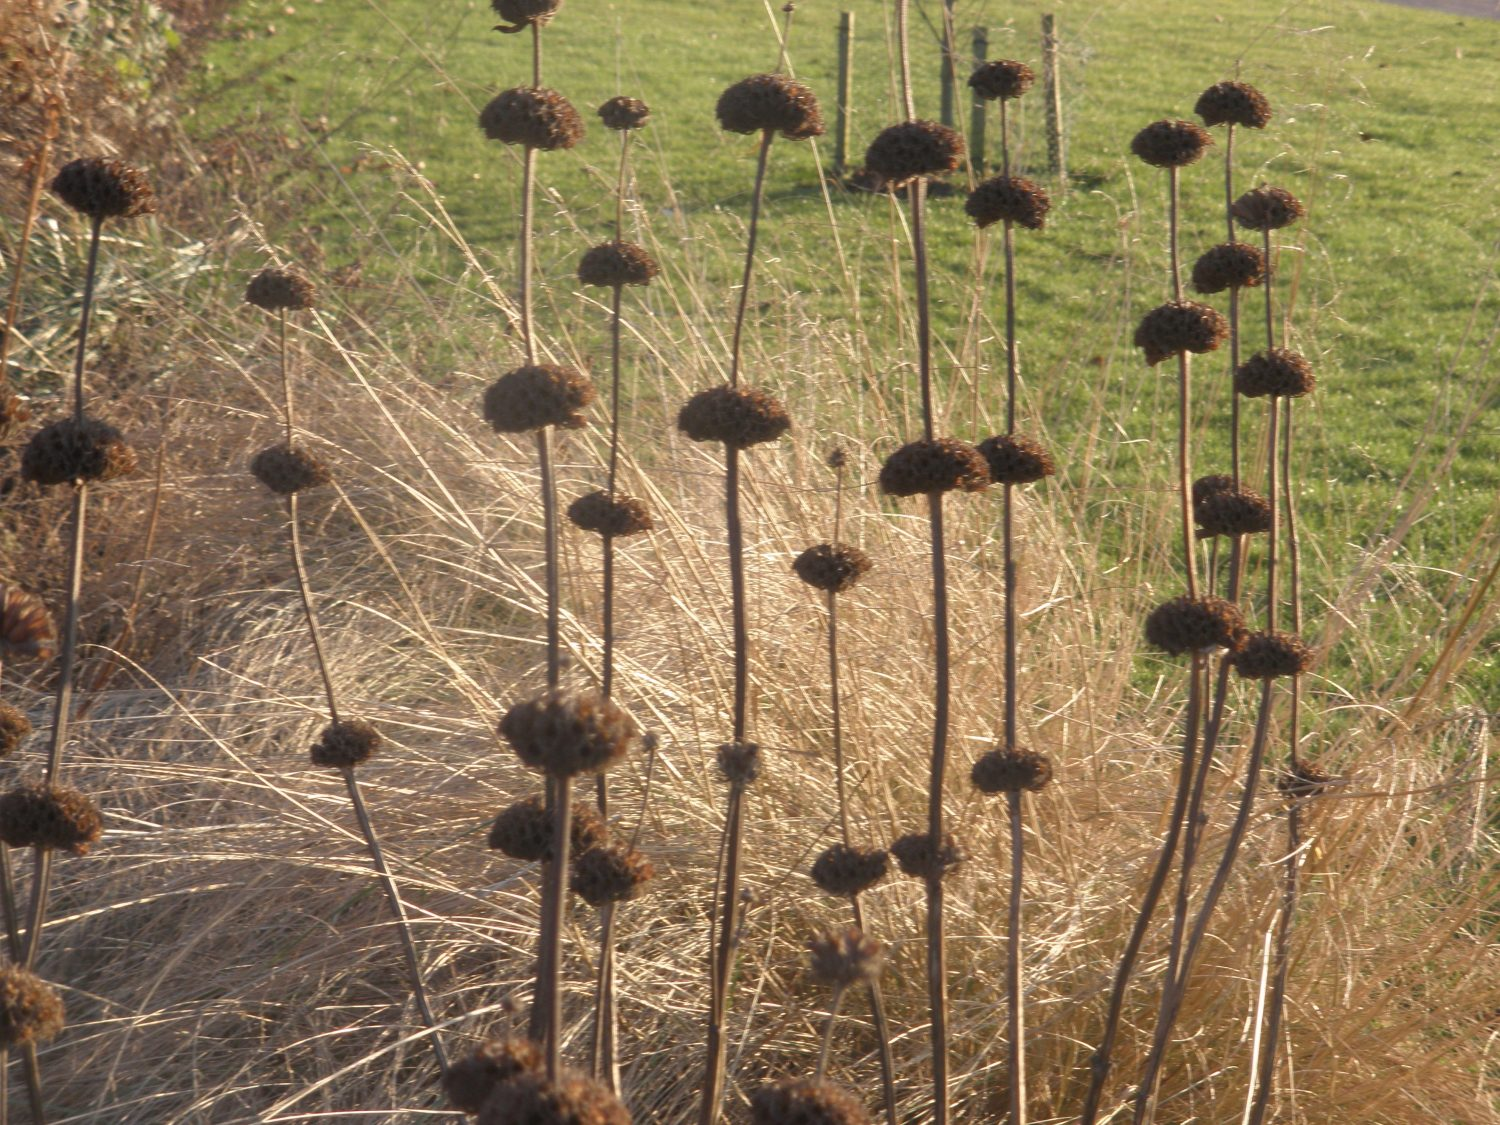 Whorls of Phlomis seedheads